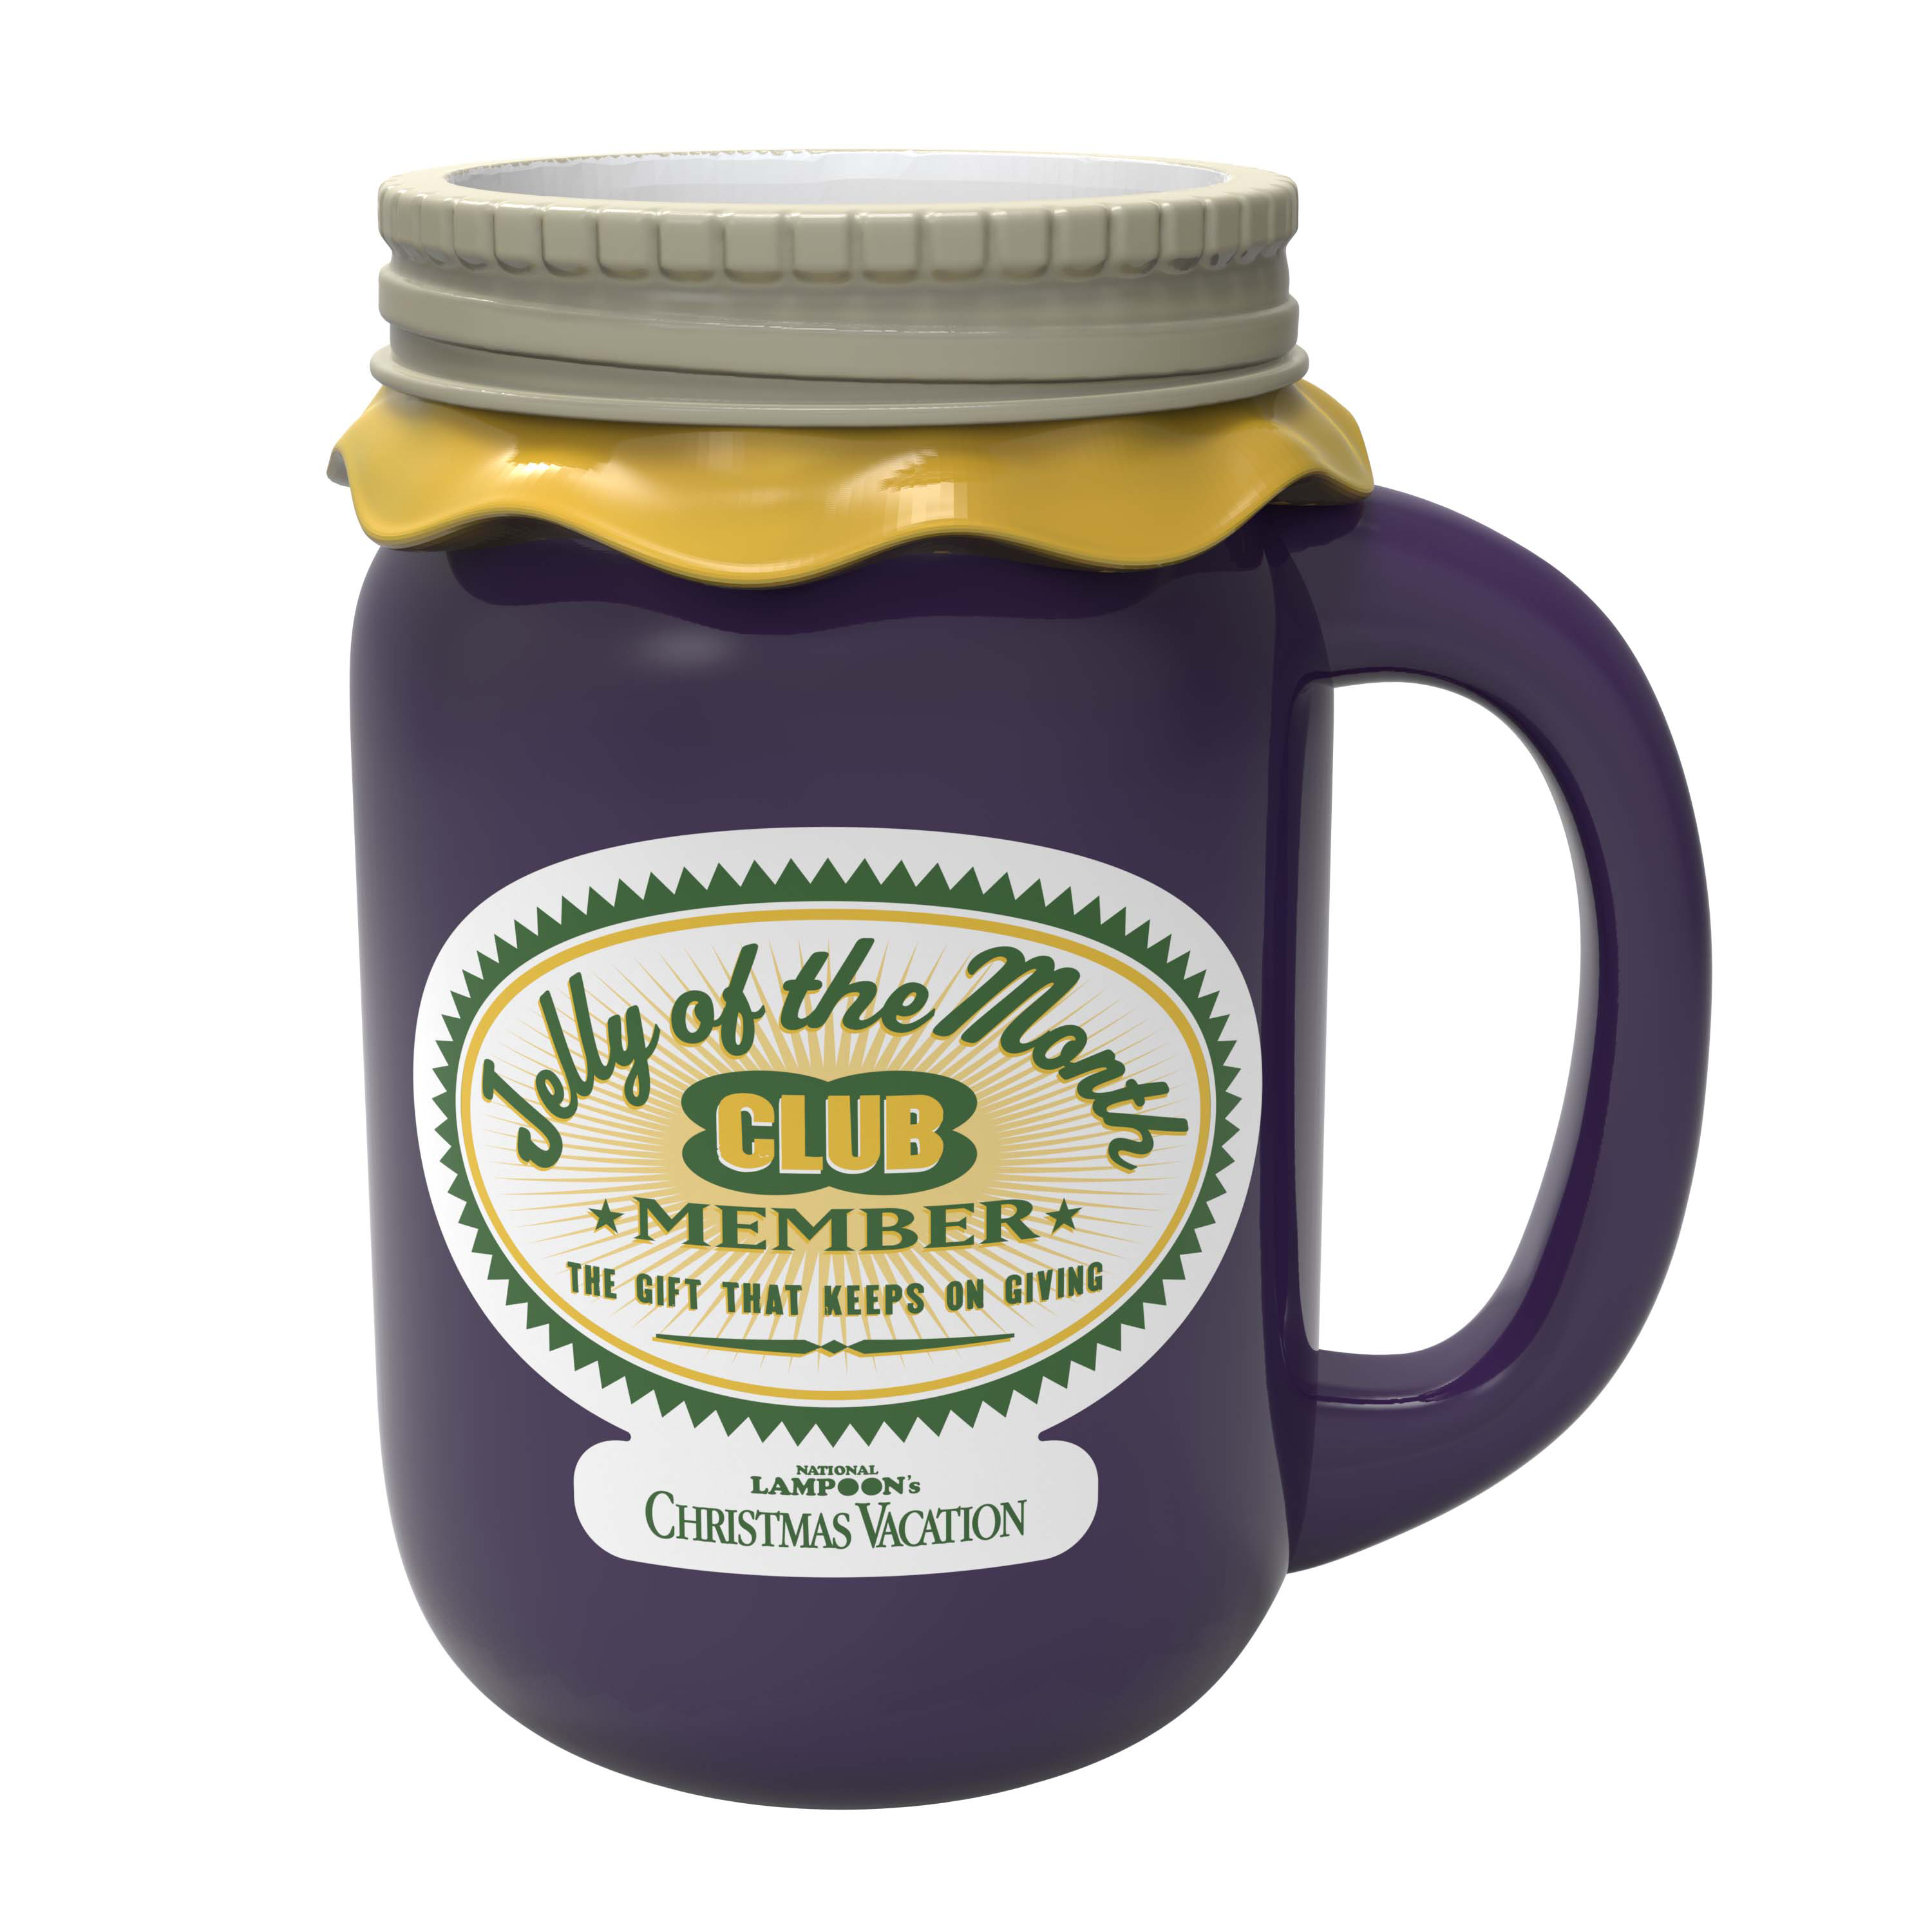 National Lampoon 10 ounce Coffee Mug, Jelly of the Month Club slideshow image 2